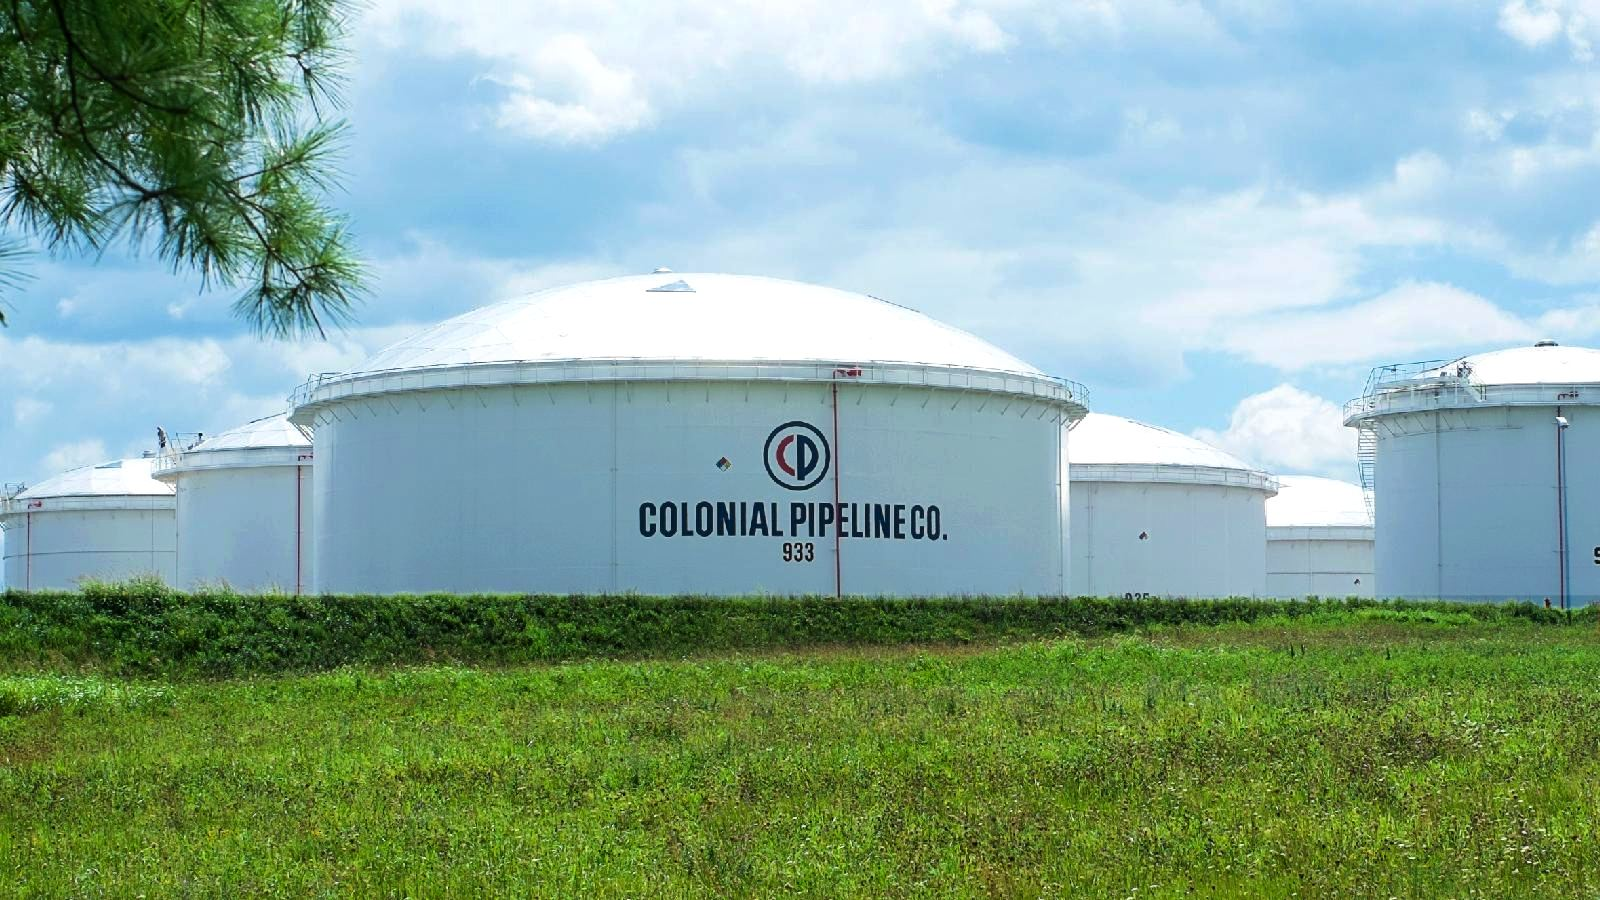 Colonial Pipeline restores operation